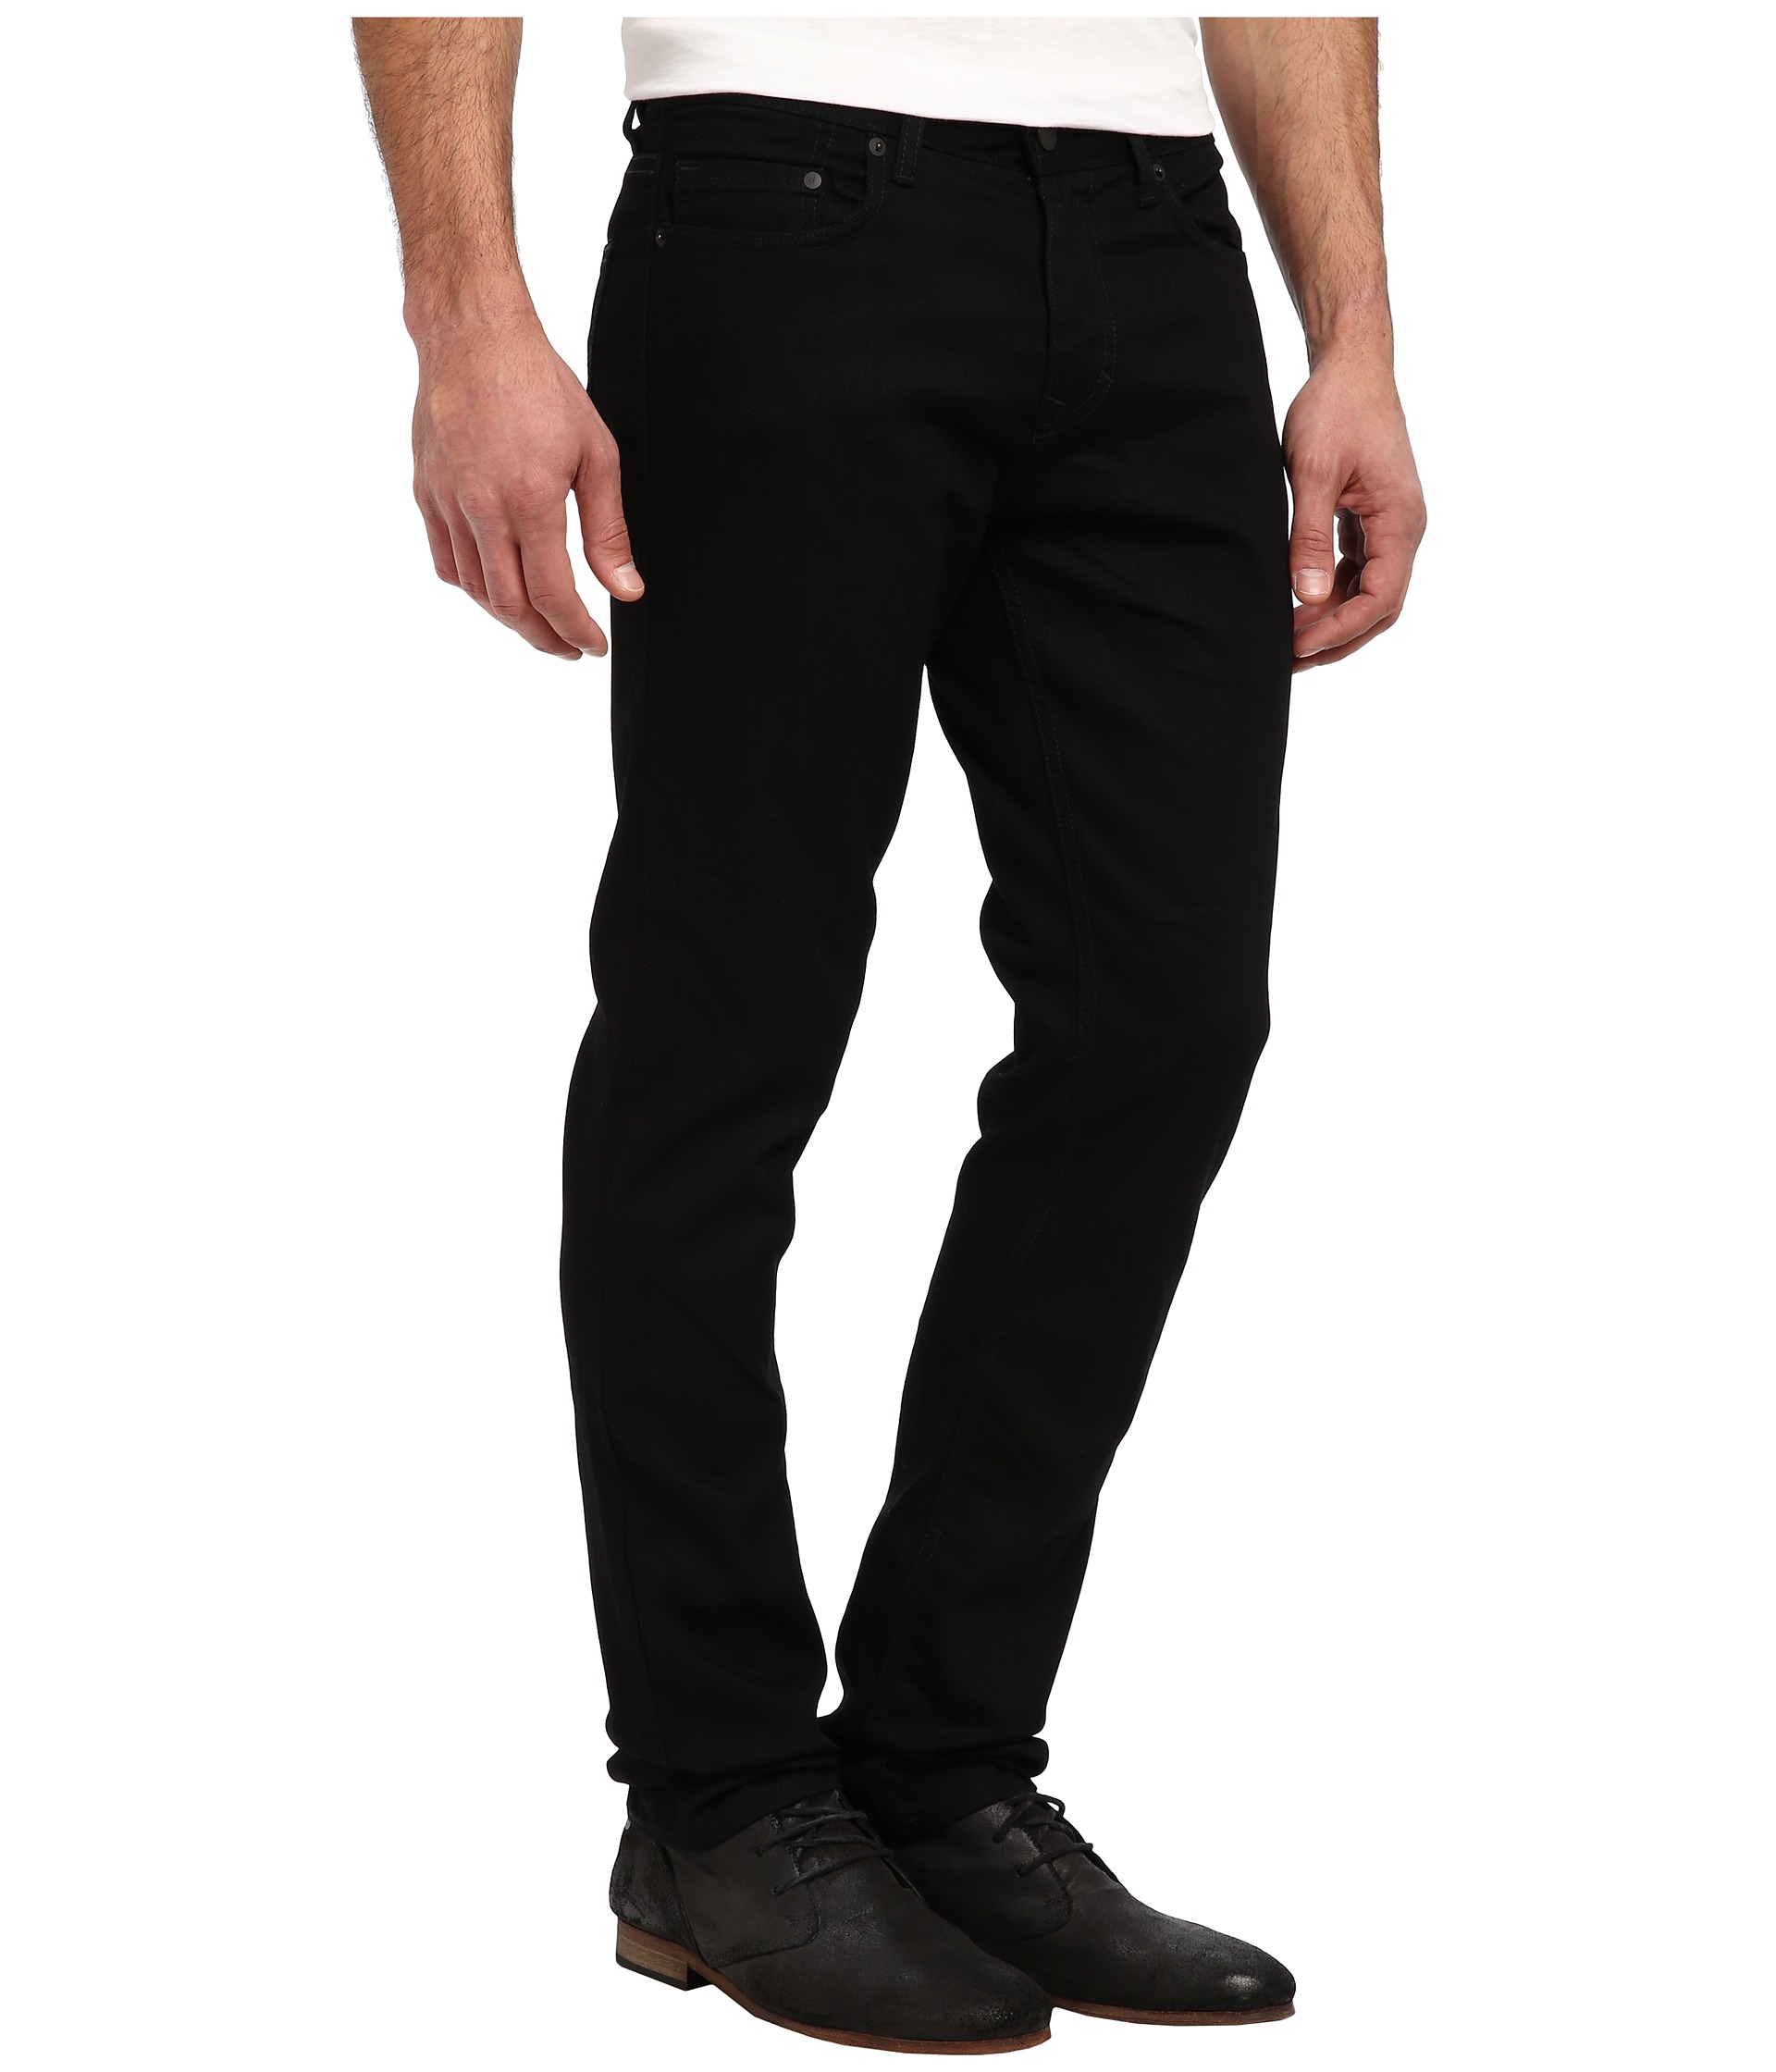 6bc509c8b05 Calvin Klein Jeans Slim Fit in Clean Black at outlet - filmorama.si